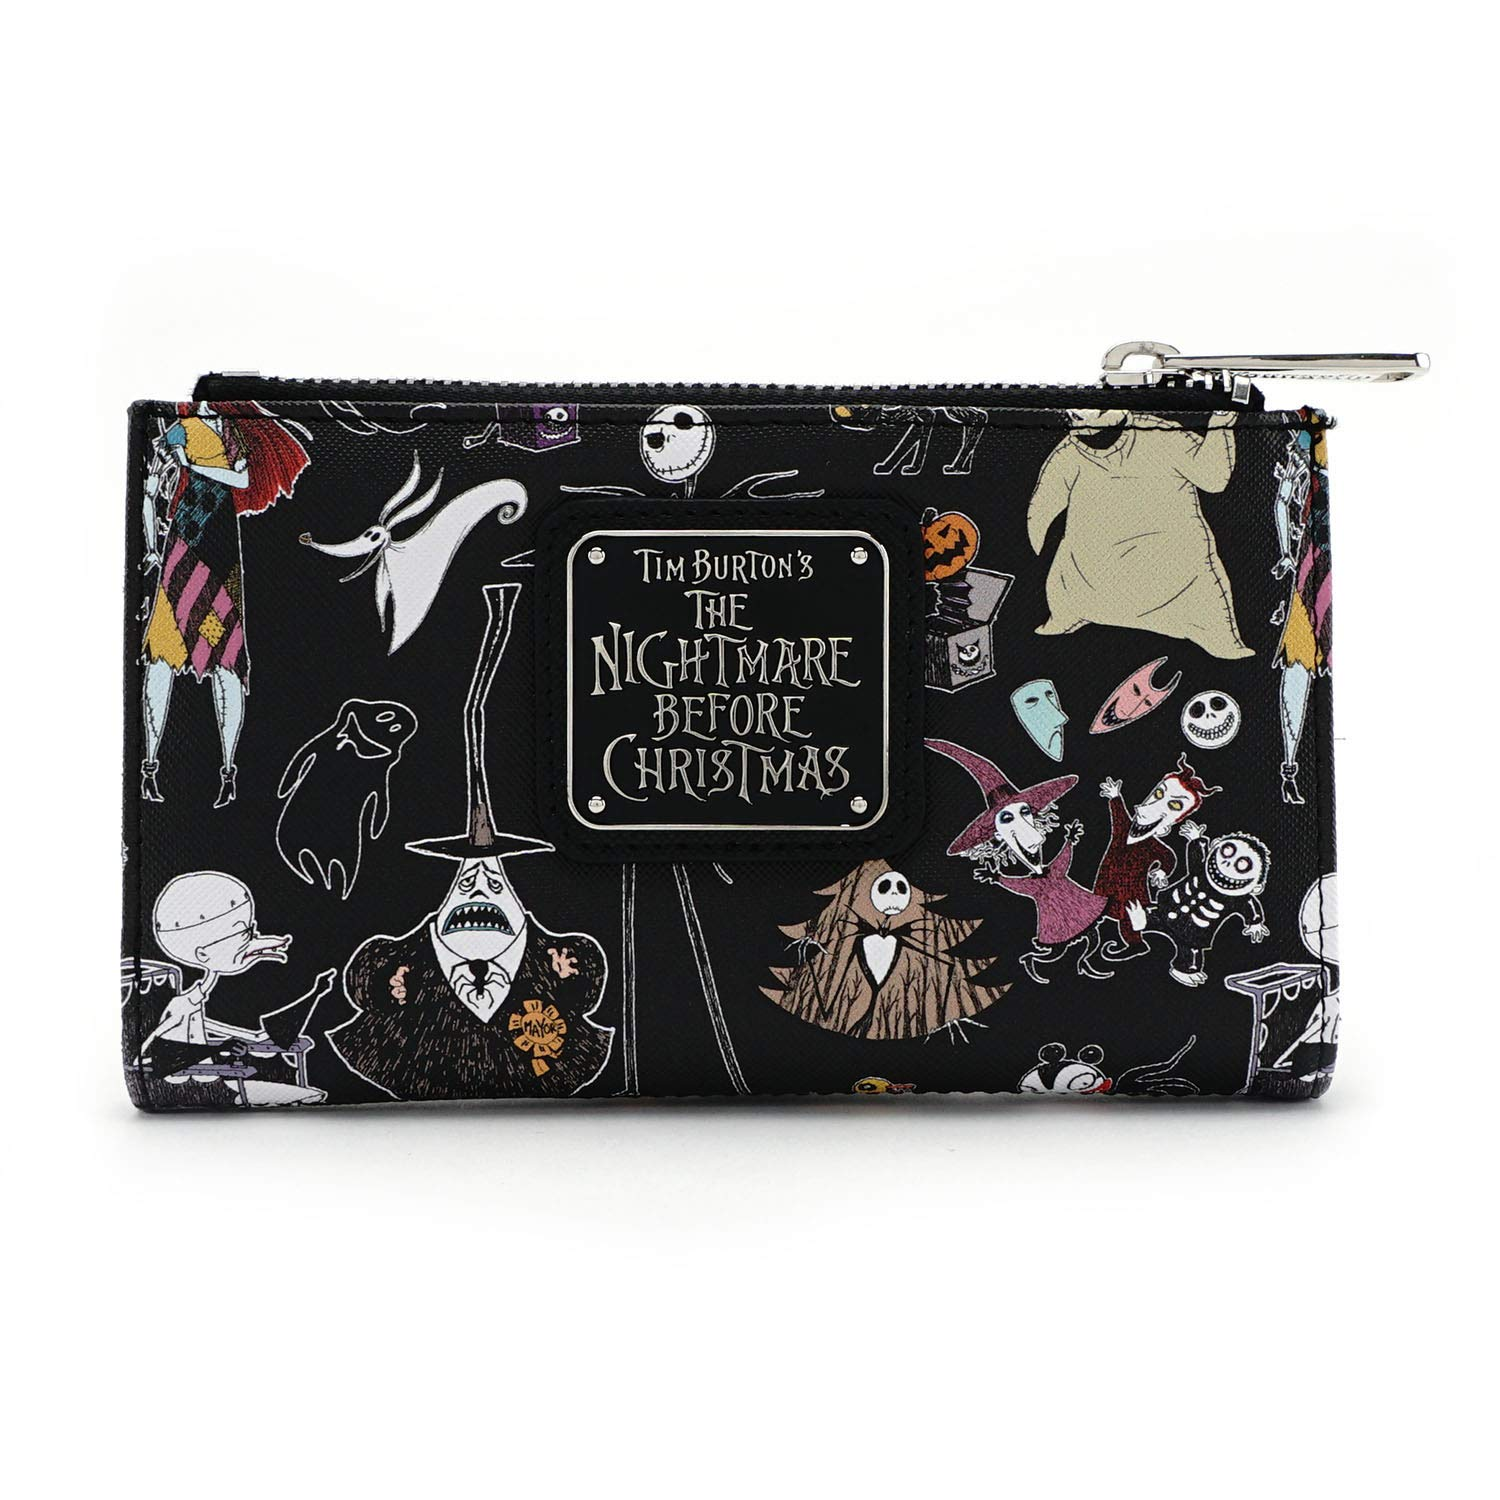 c8db8aca6b52 Loungefly x The Nightmare Before Christmas Character Bi-Fold Wallet product  image